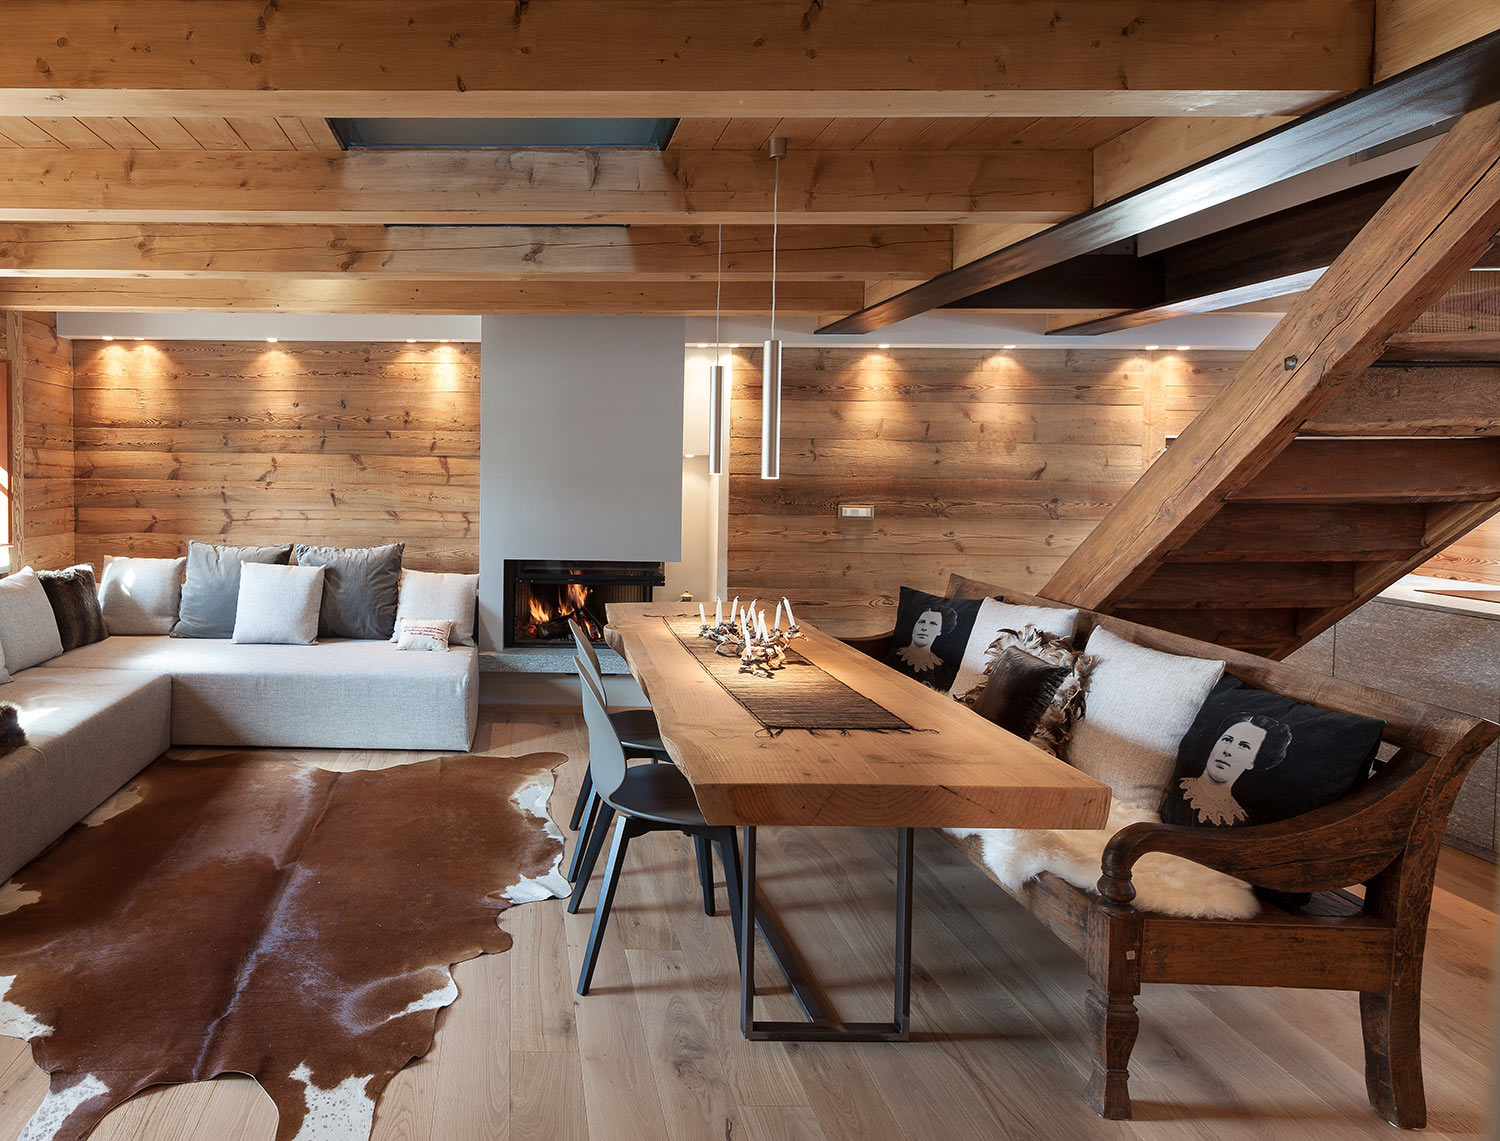 Chalet di design aosta stile rustico montagna westwing for Design di casa